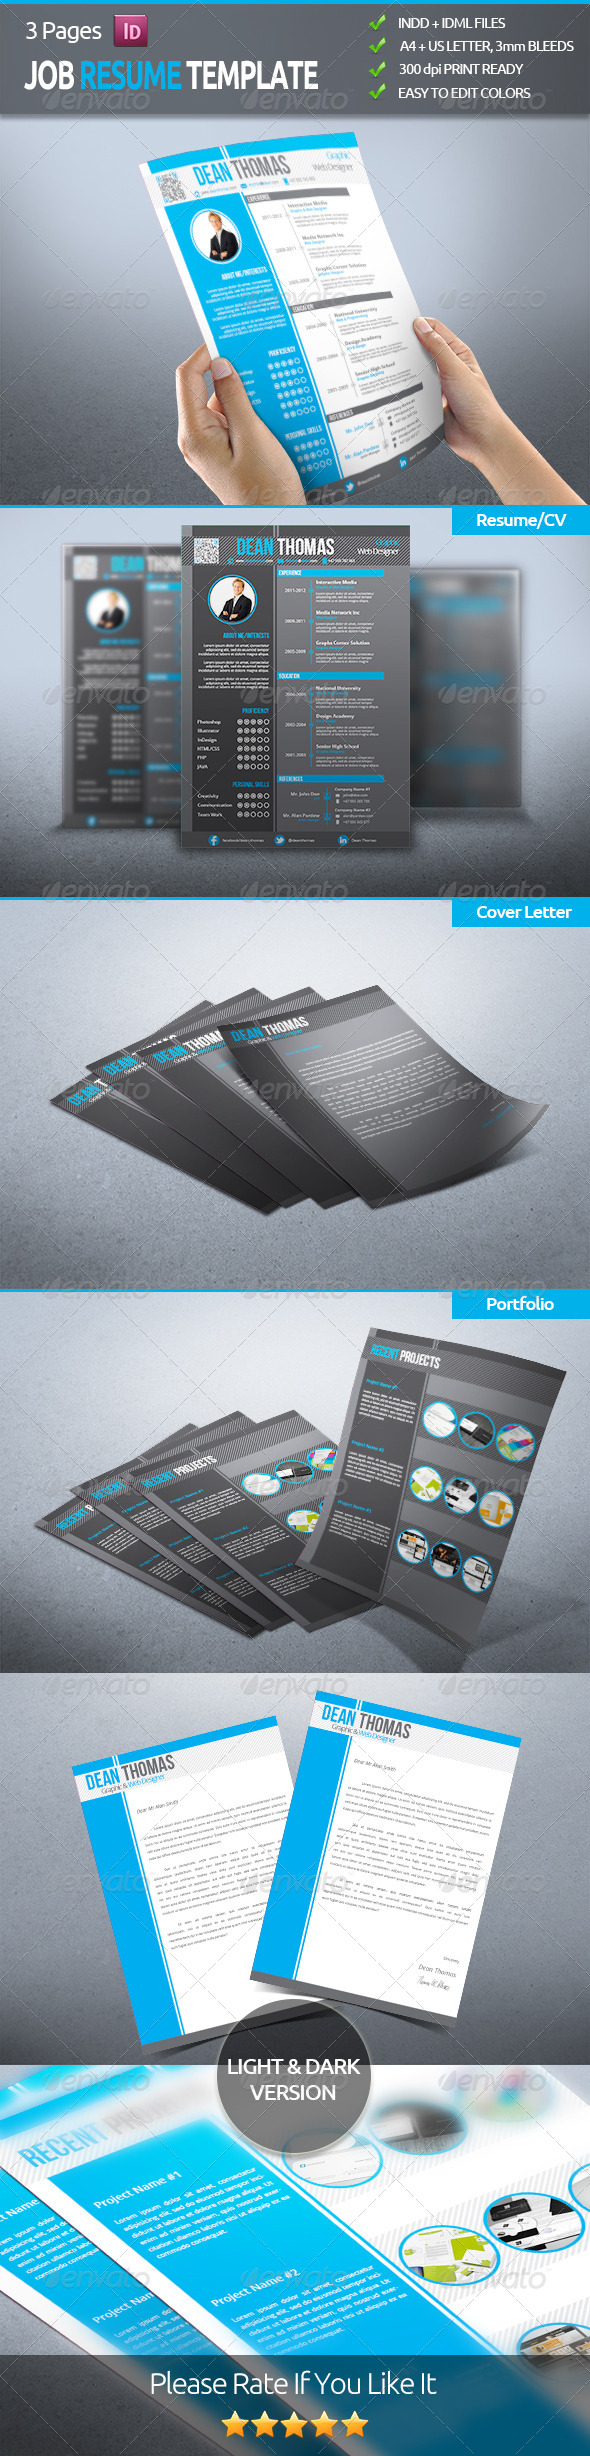 GraphicRiver Job Resume CV Template 5195393